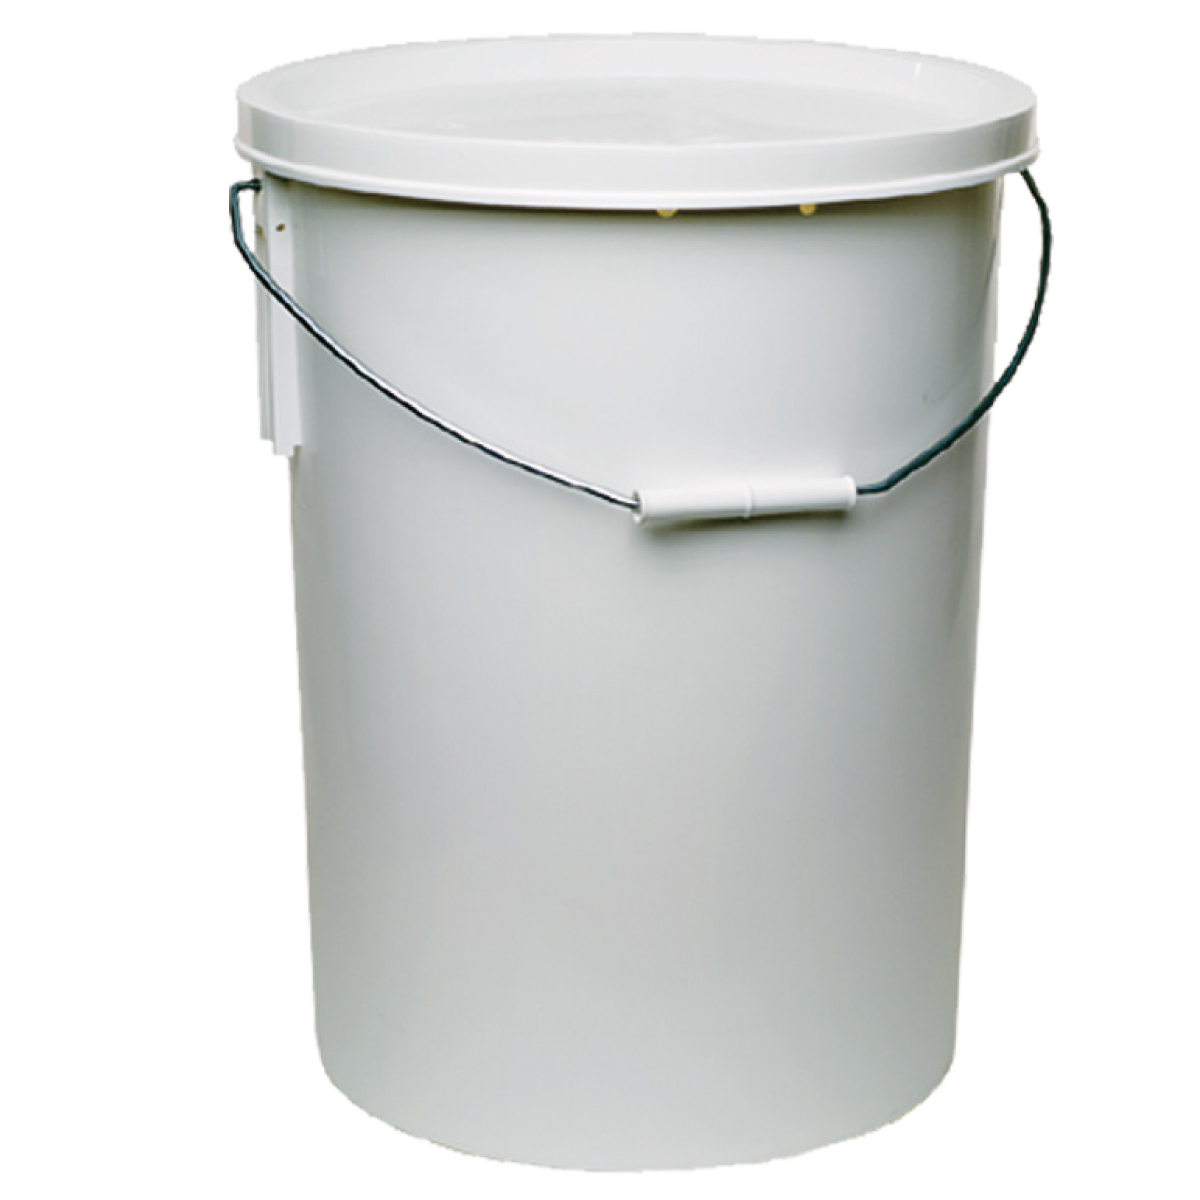 5 Gallon Bucket Home Depot Fed Up With Carrying Buckets Try An Auto Top Off System